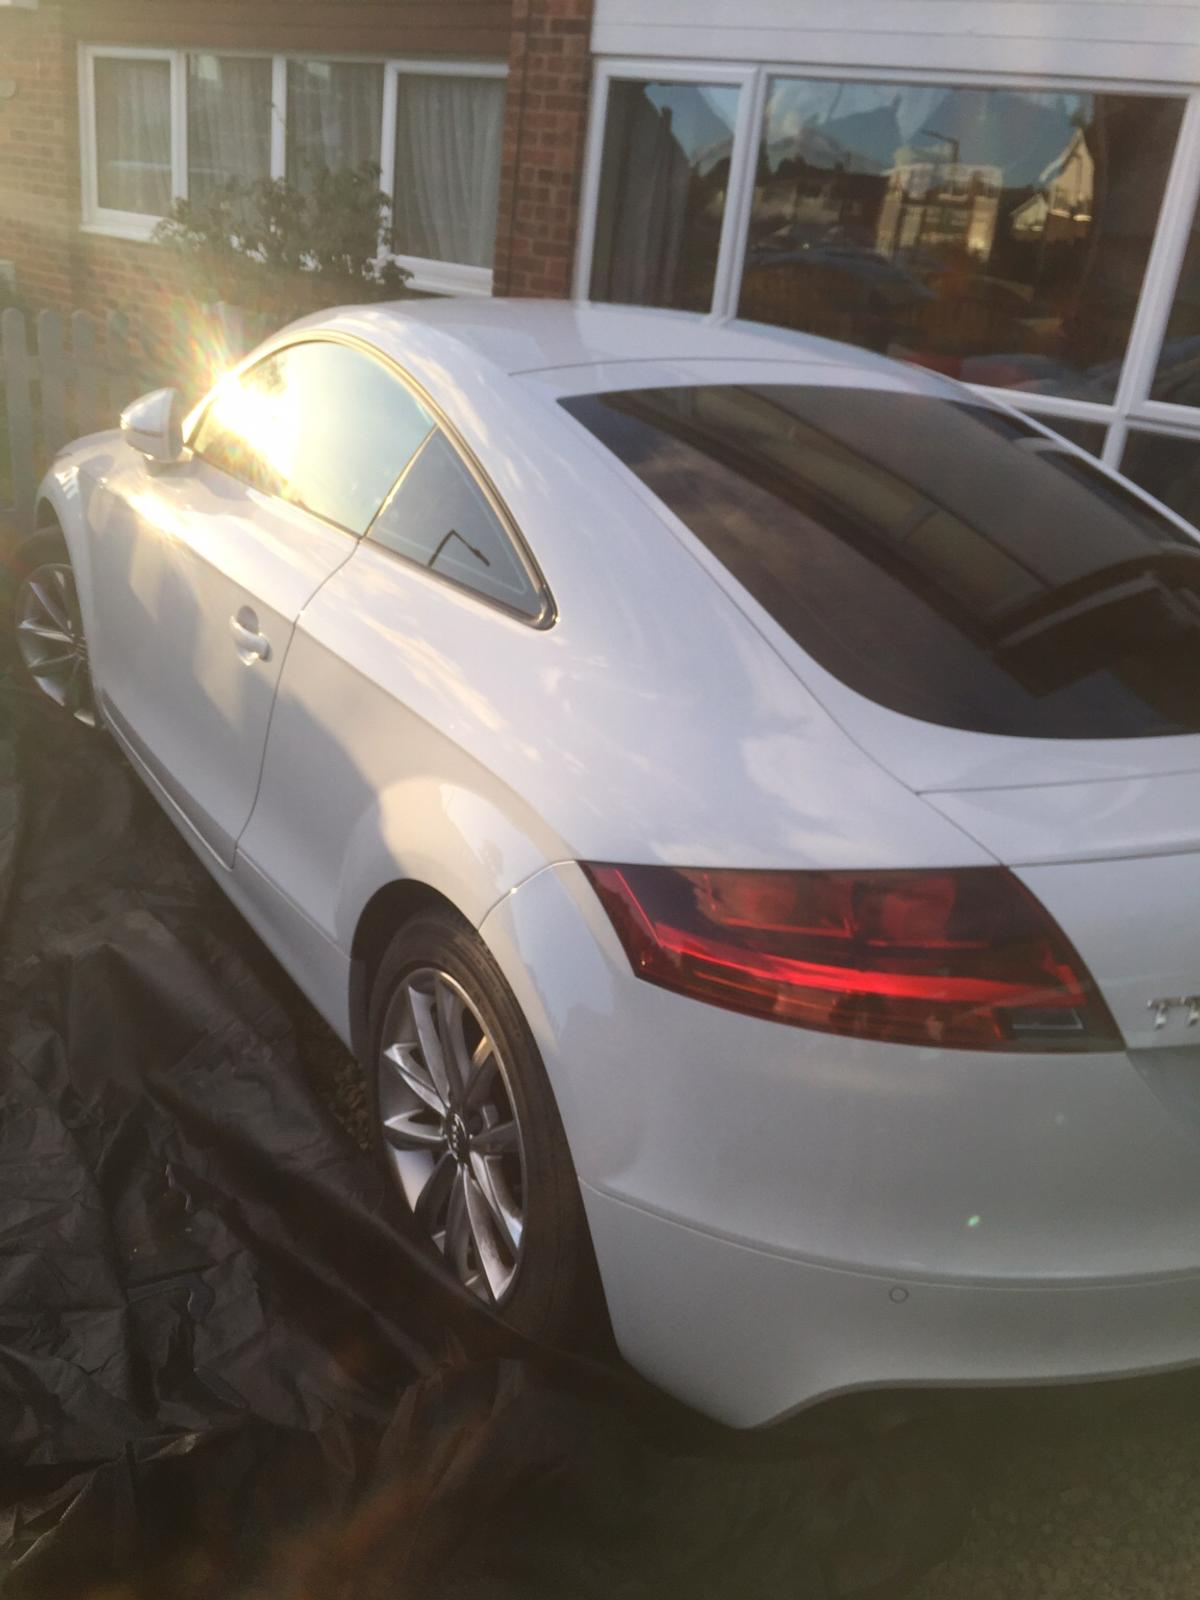 Audi Tt Polar White With Red Leather Interior In Ng10 Erewash For 8 500 00 For Sale Shpock